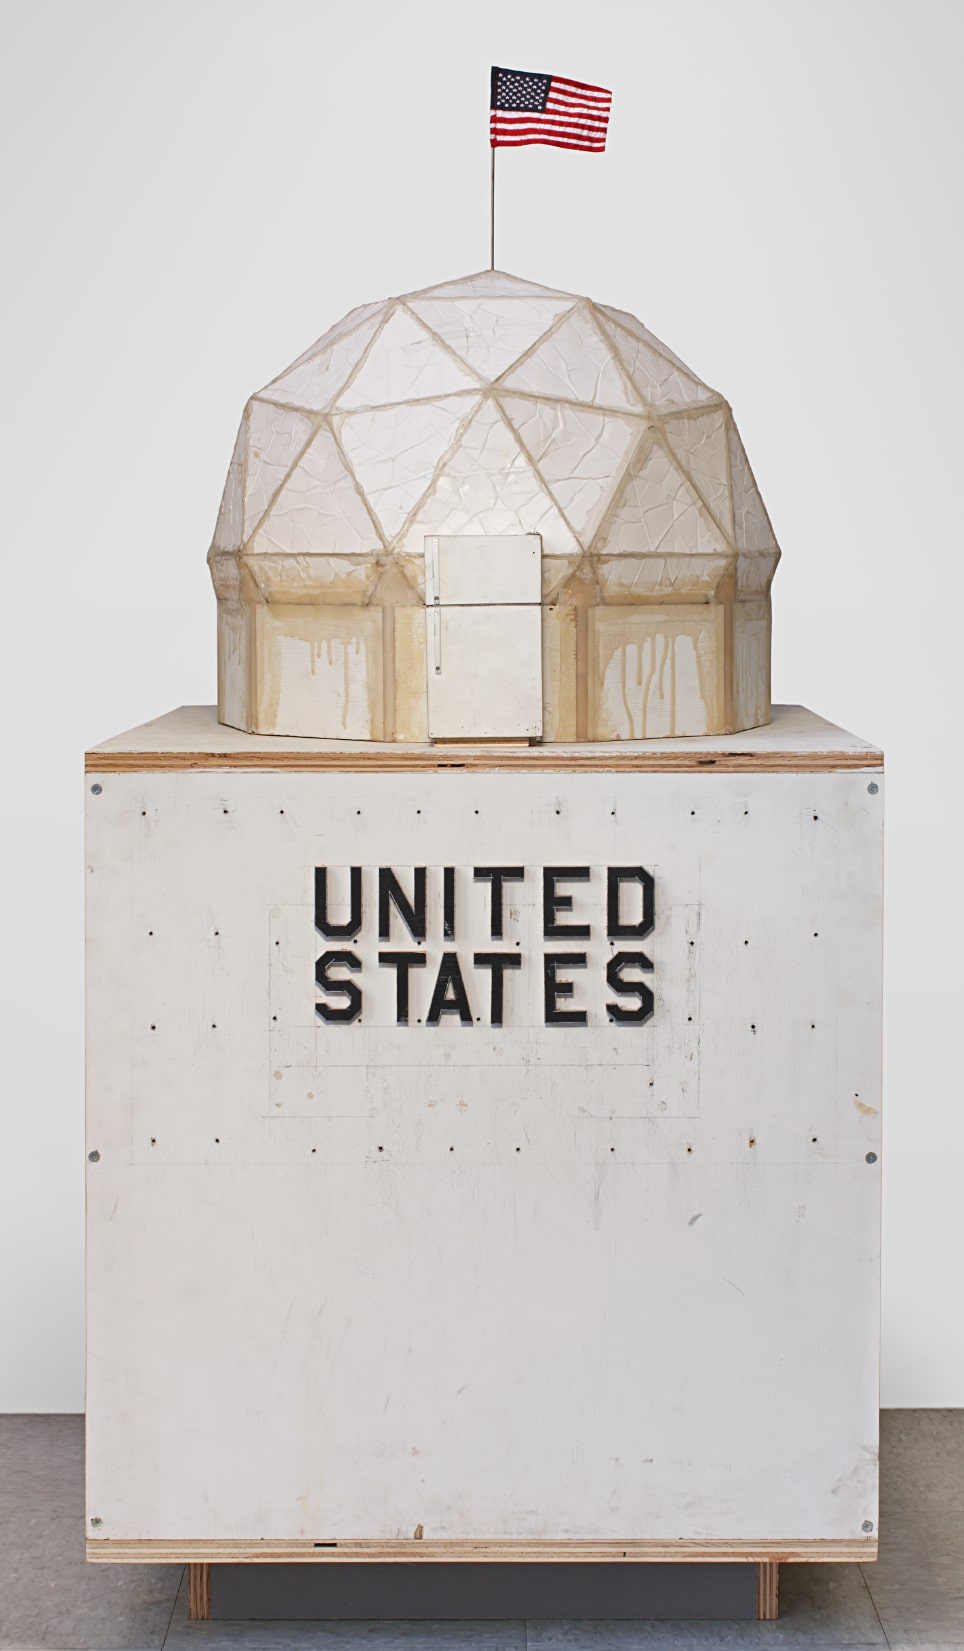 Tom Sachs, Geo Hab, 2012, foam core, thermal adhesive, steel rod, synthetic polymer paint on plywood, fiber glass tape, cabosil, epoxy resin, magnets, hardware, 53 1/2 x 26 x 26 inches